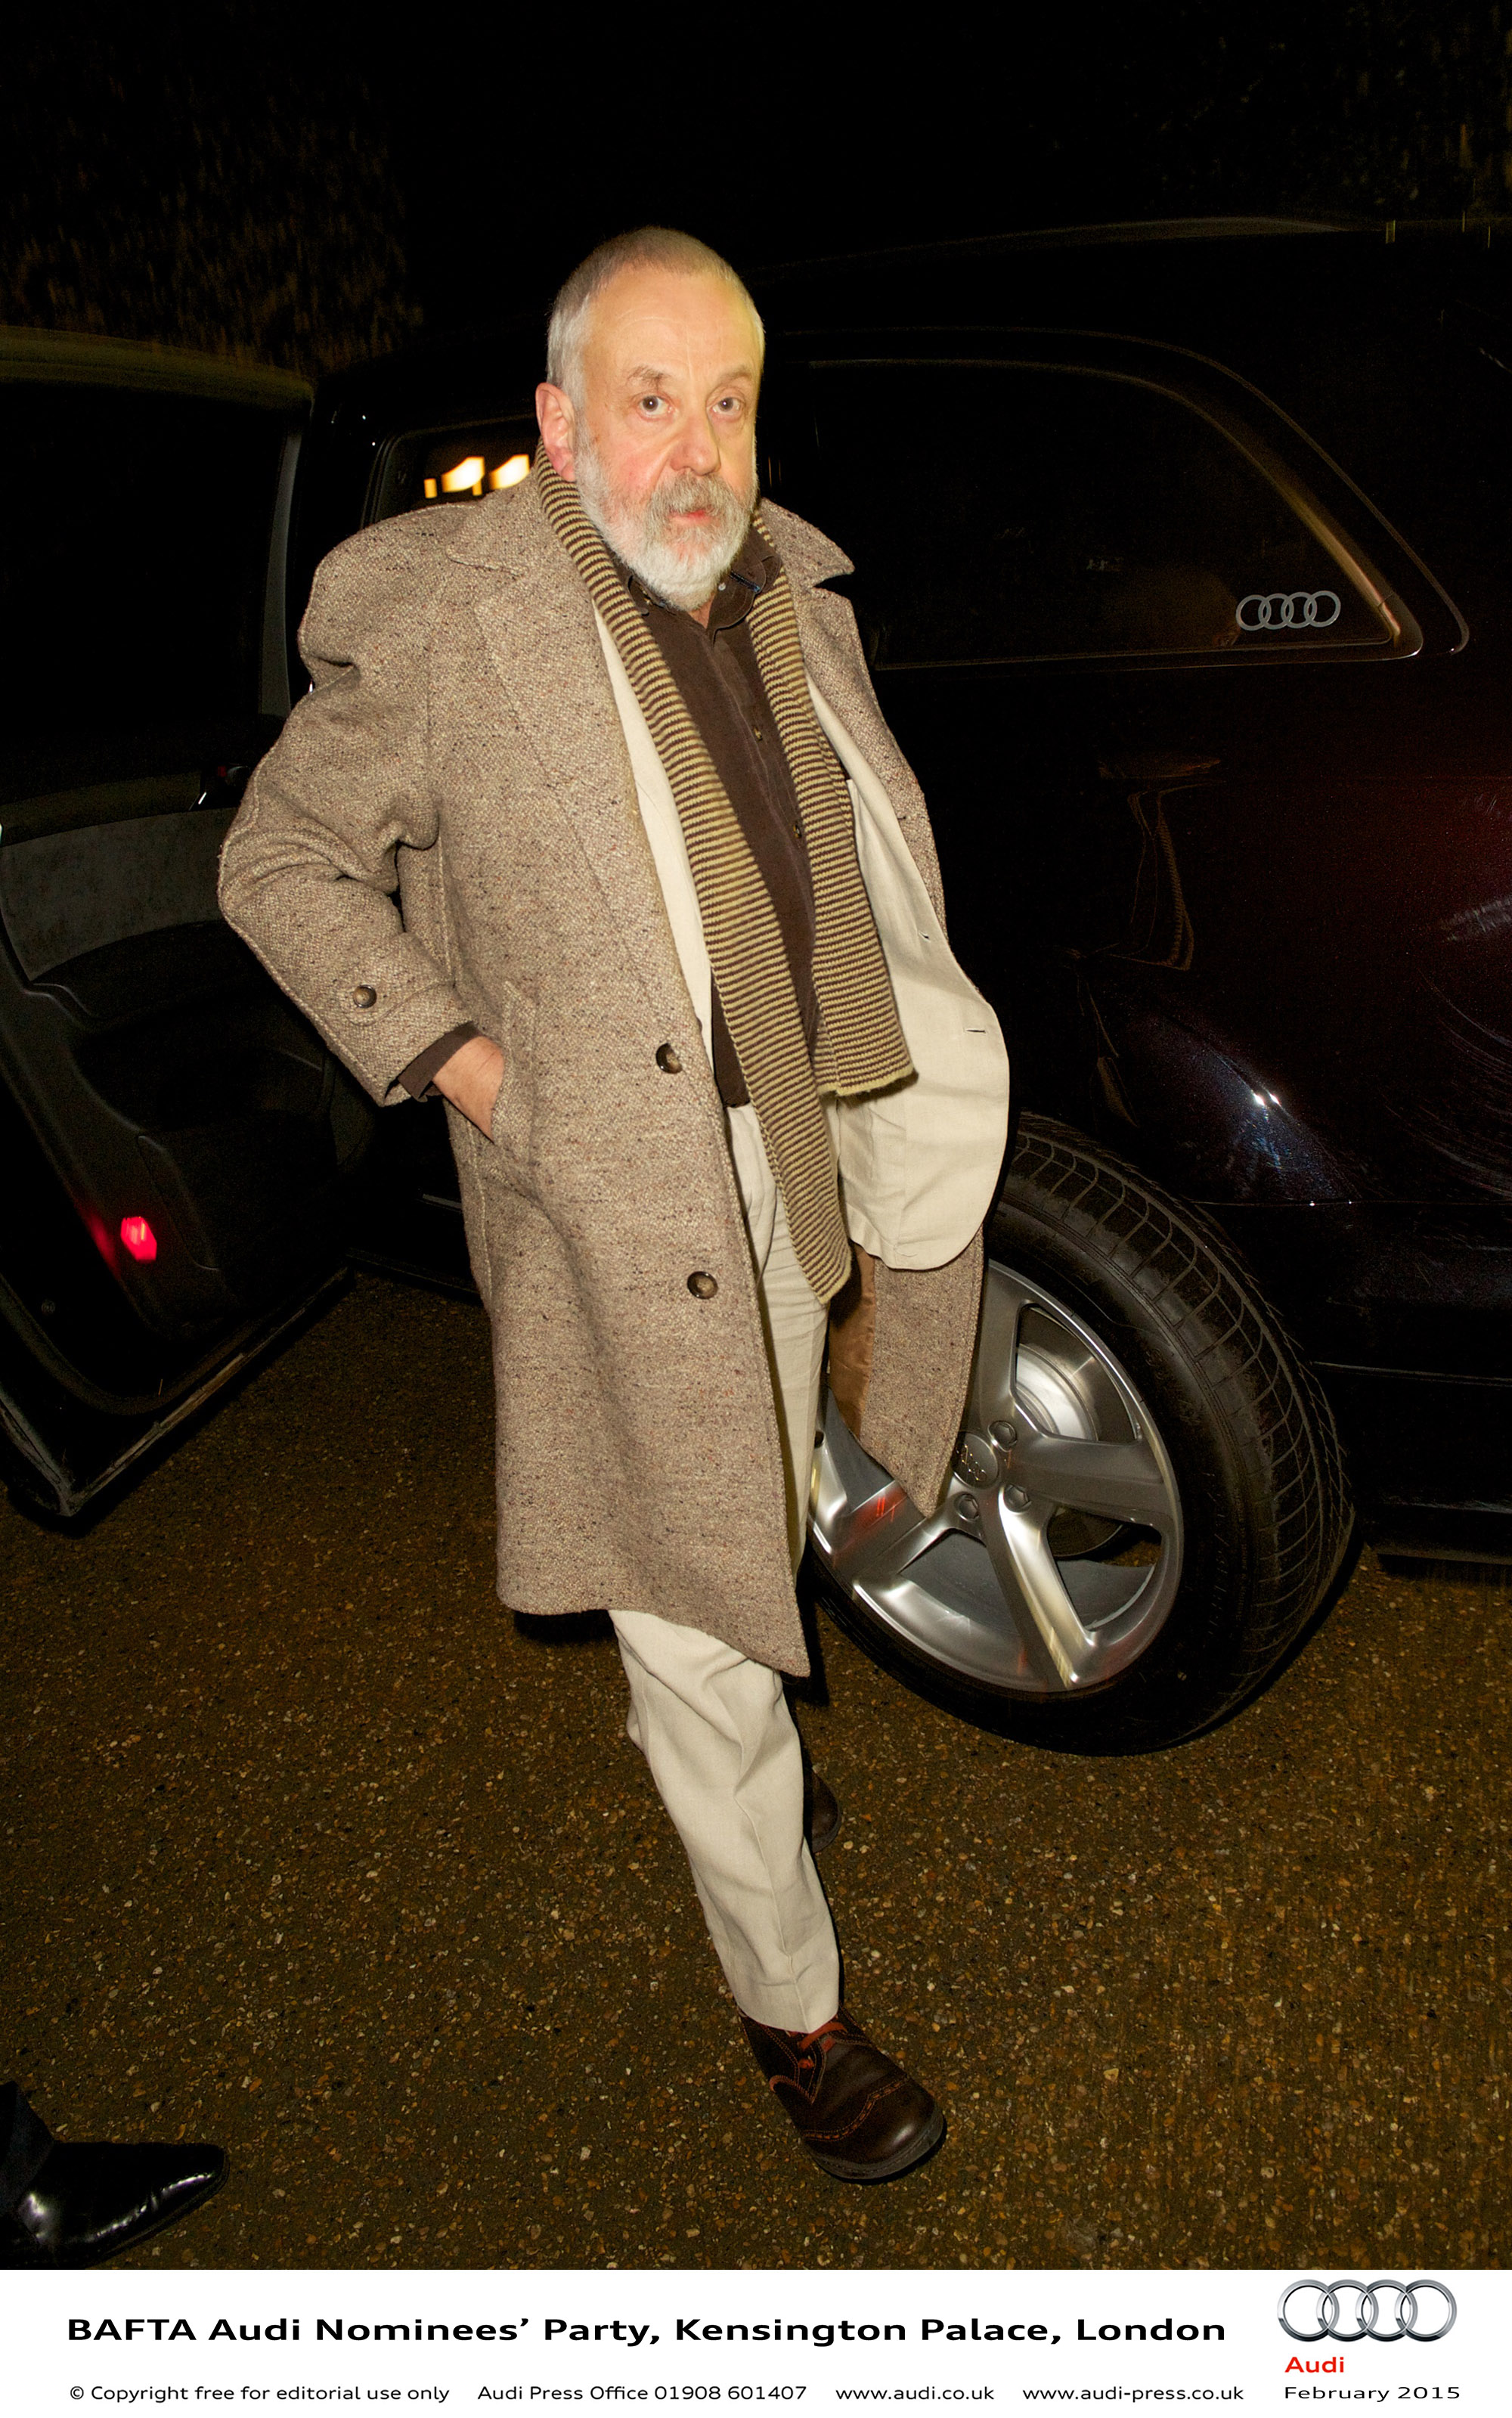 Mike Leigh - BAFTA Audi Nominees Party